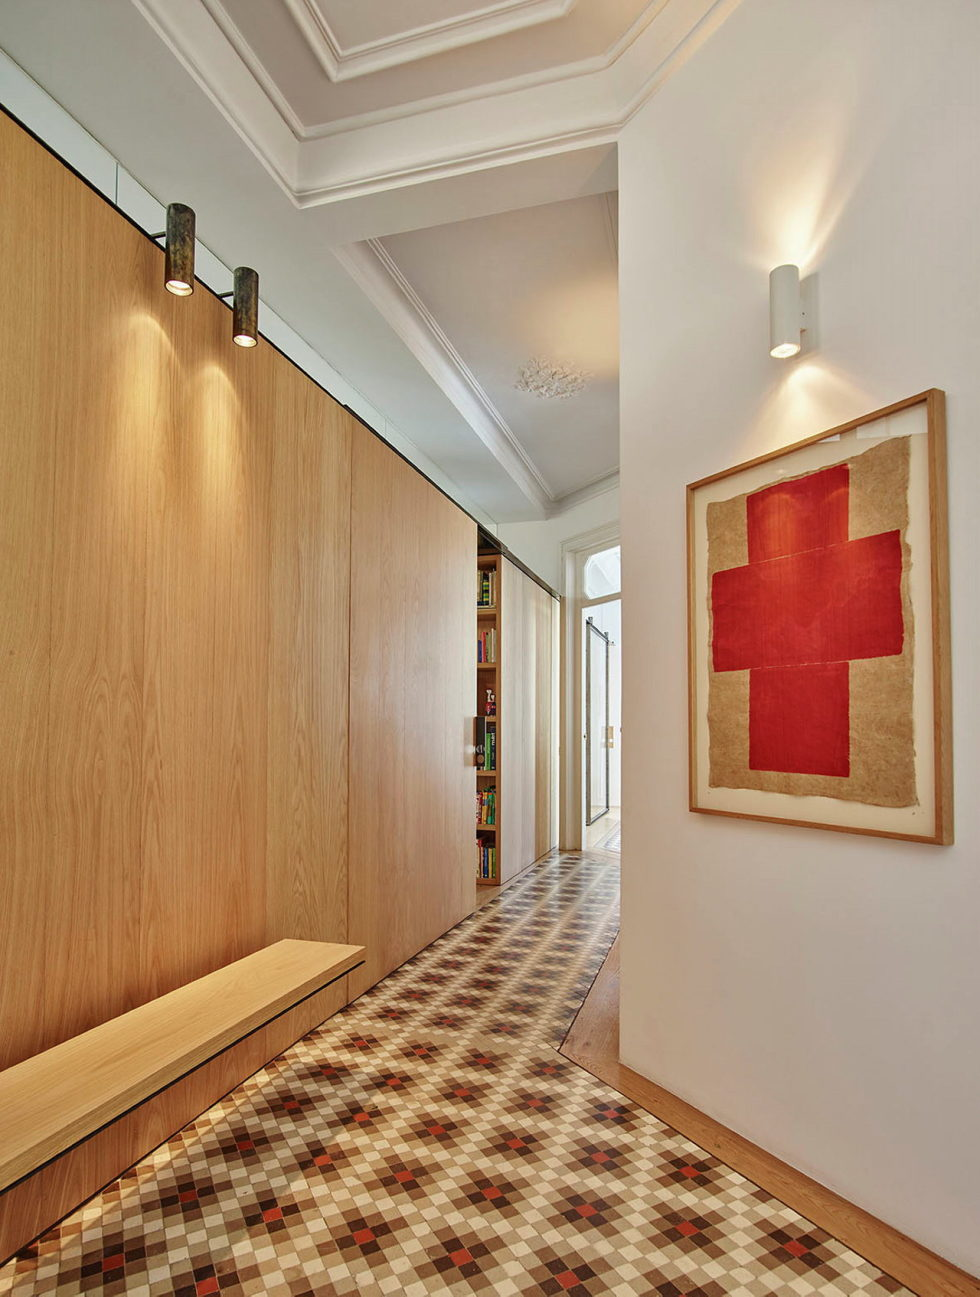 AB House 19th-century Barcelona apartment by Built Architecture 3